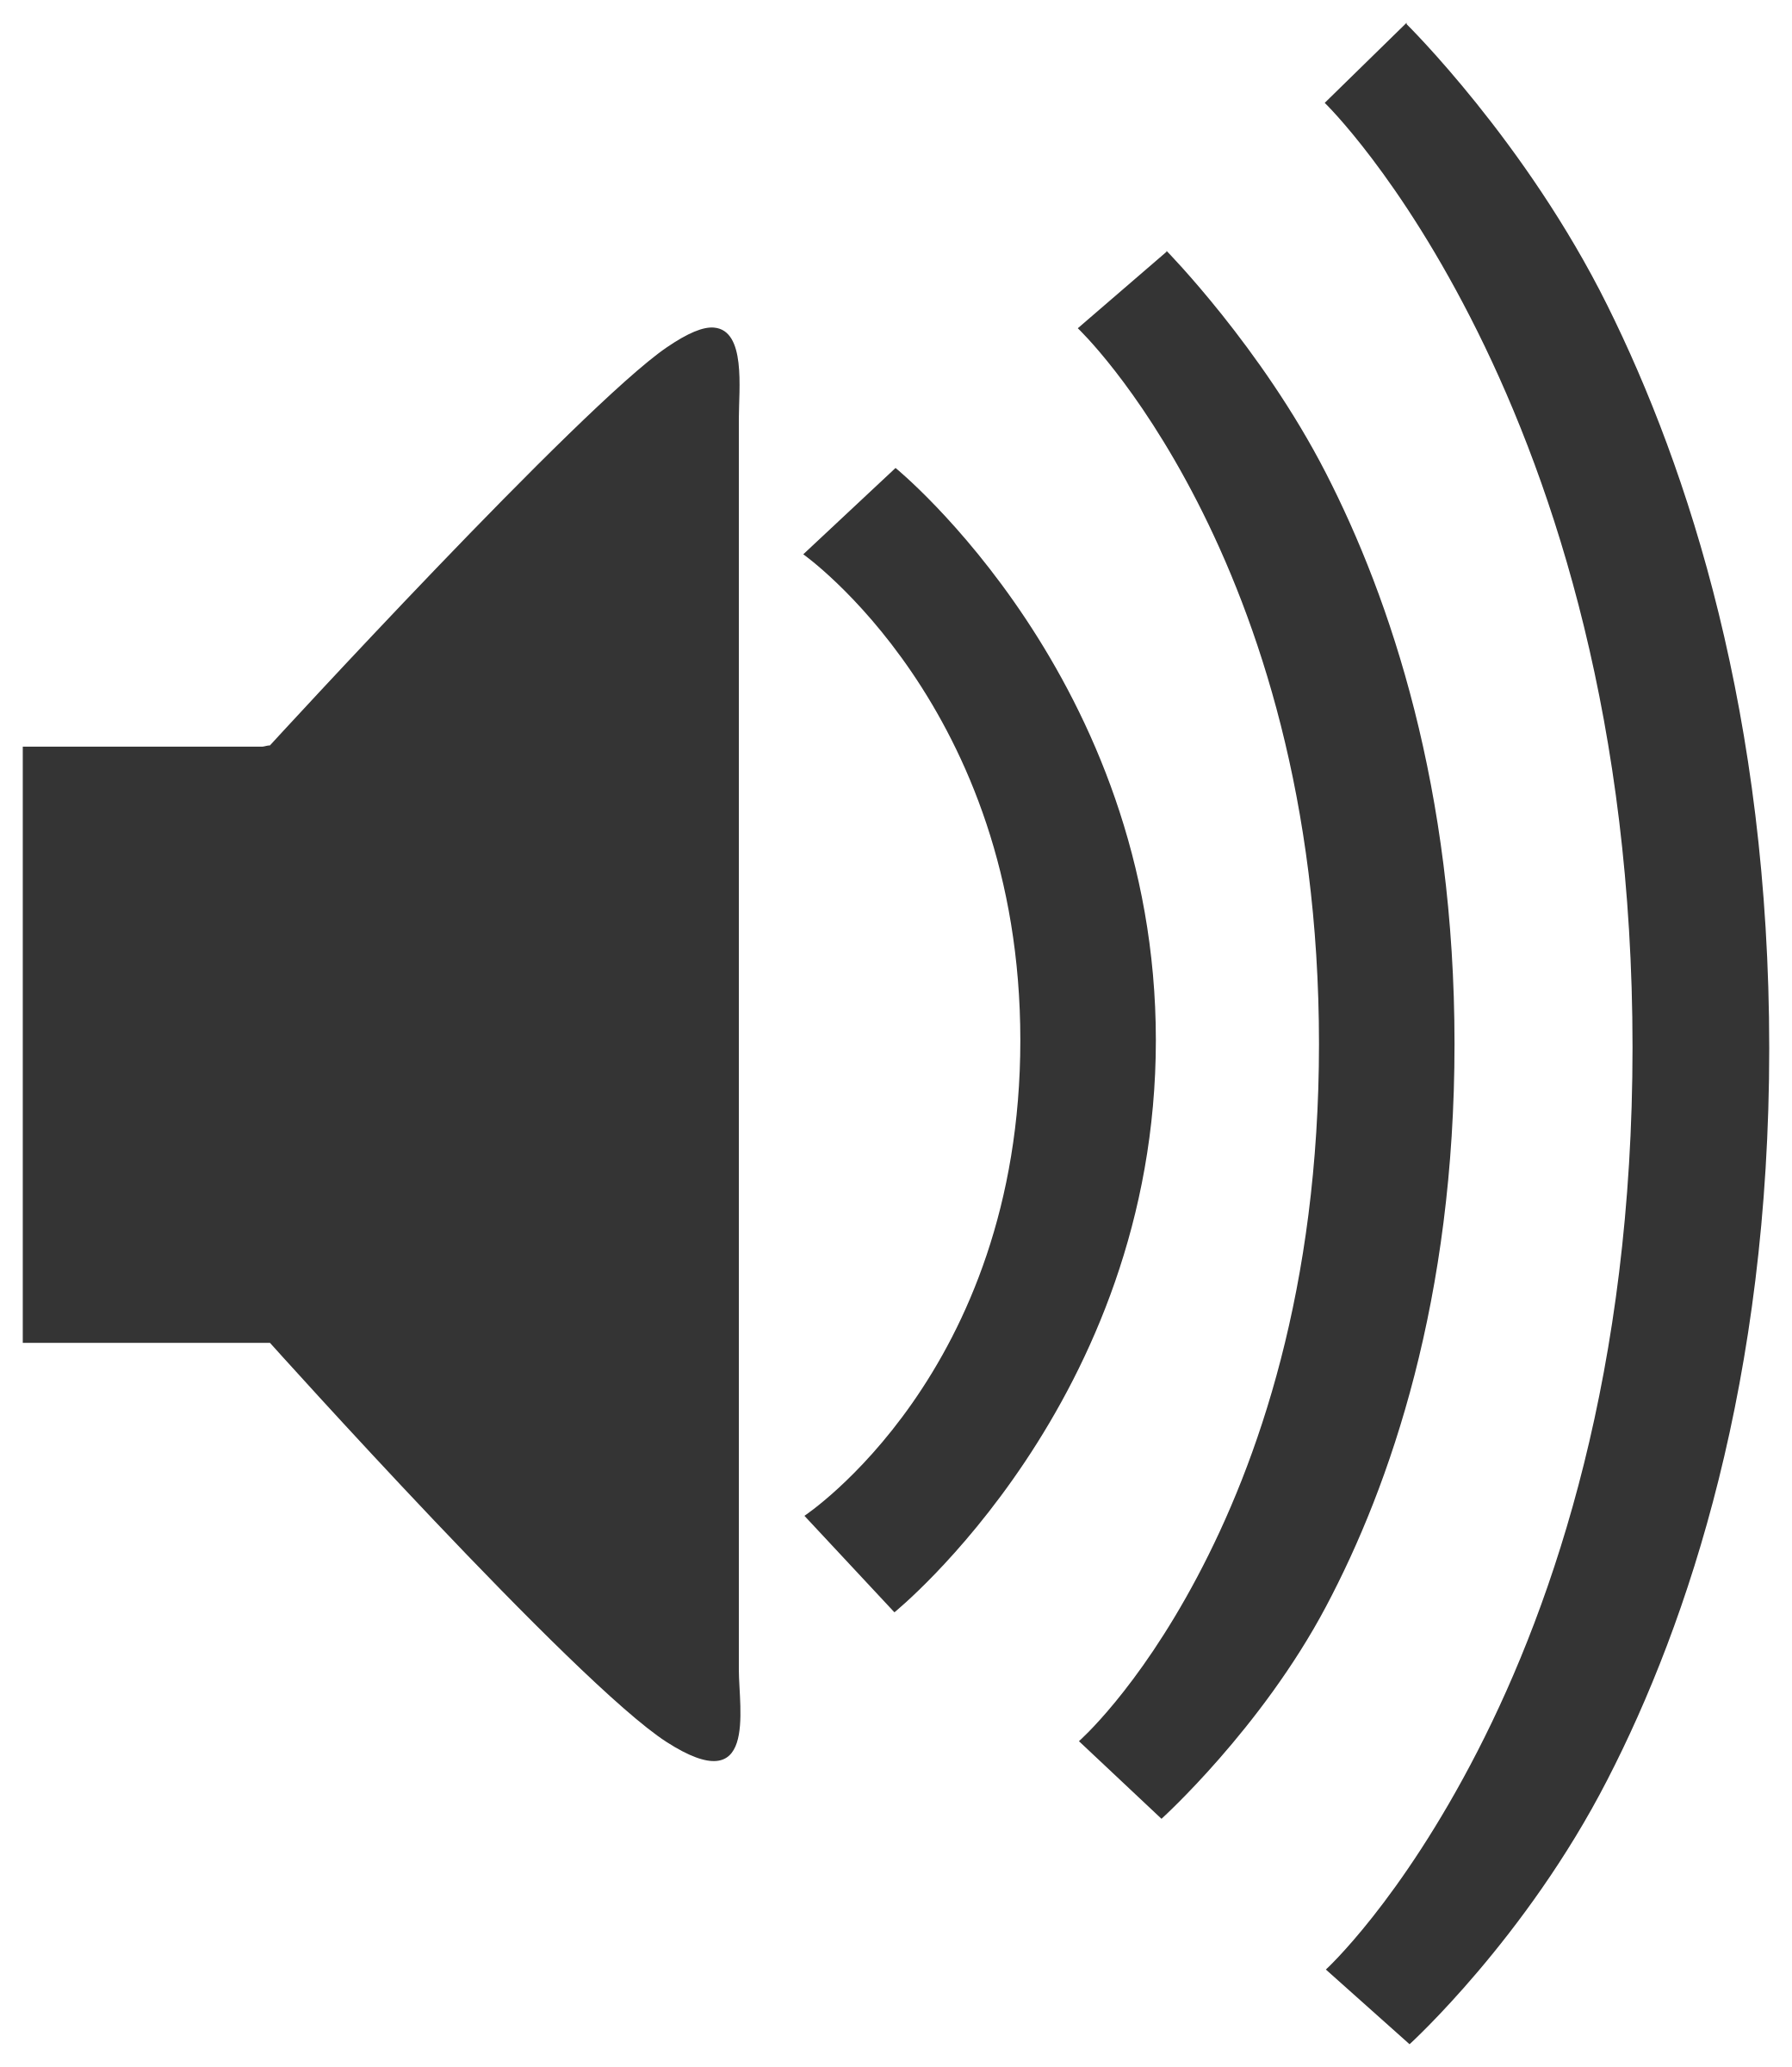 Speaker png icon. Icons free and downloads